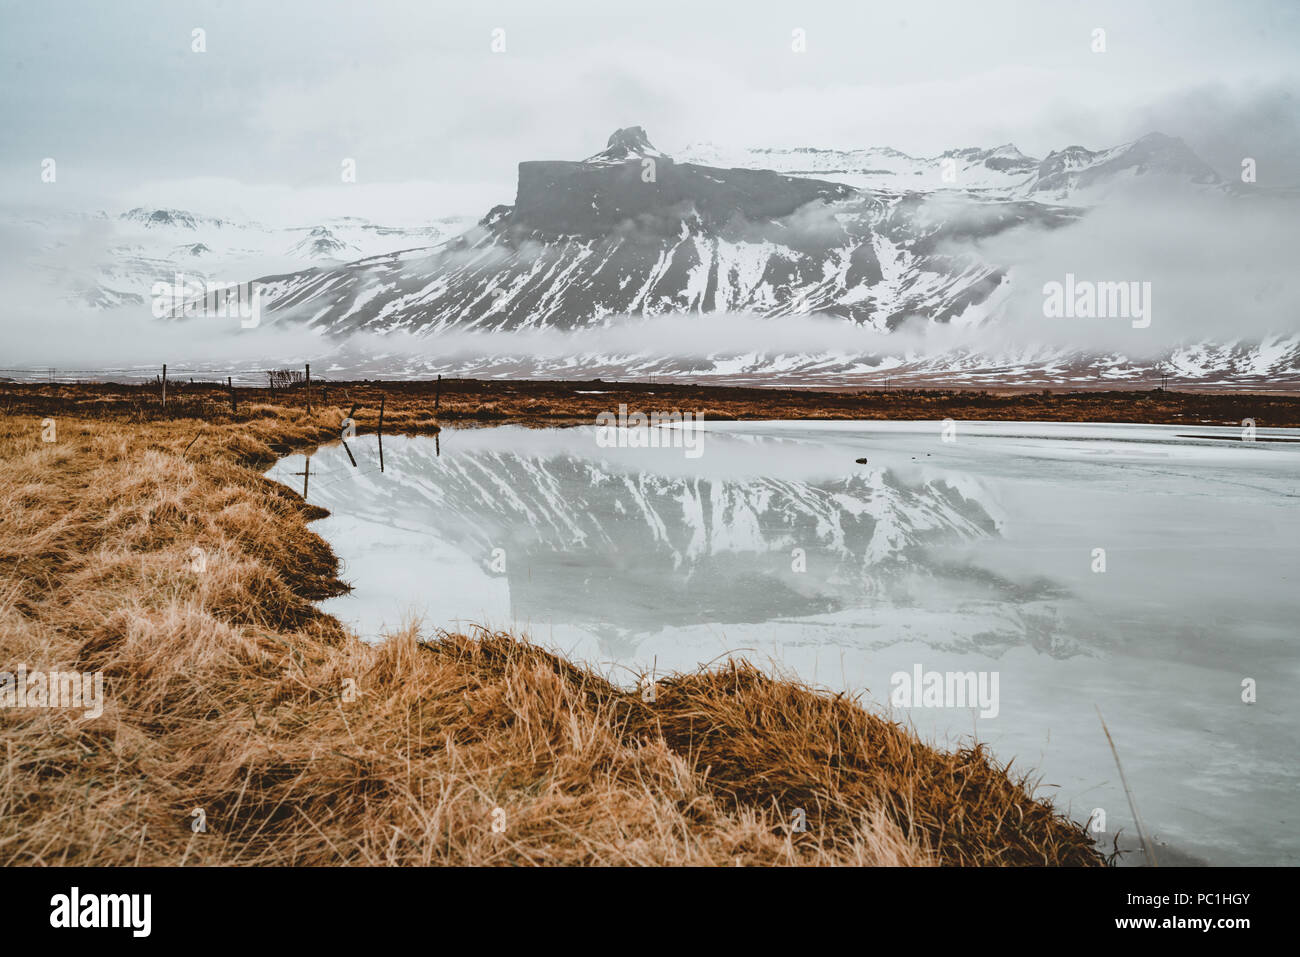 Iceland Mountain reflection with ice and clouds. Snaesfellnes Peninsula - Stock Image